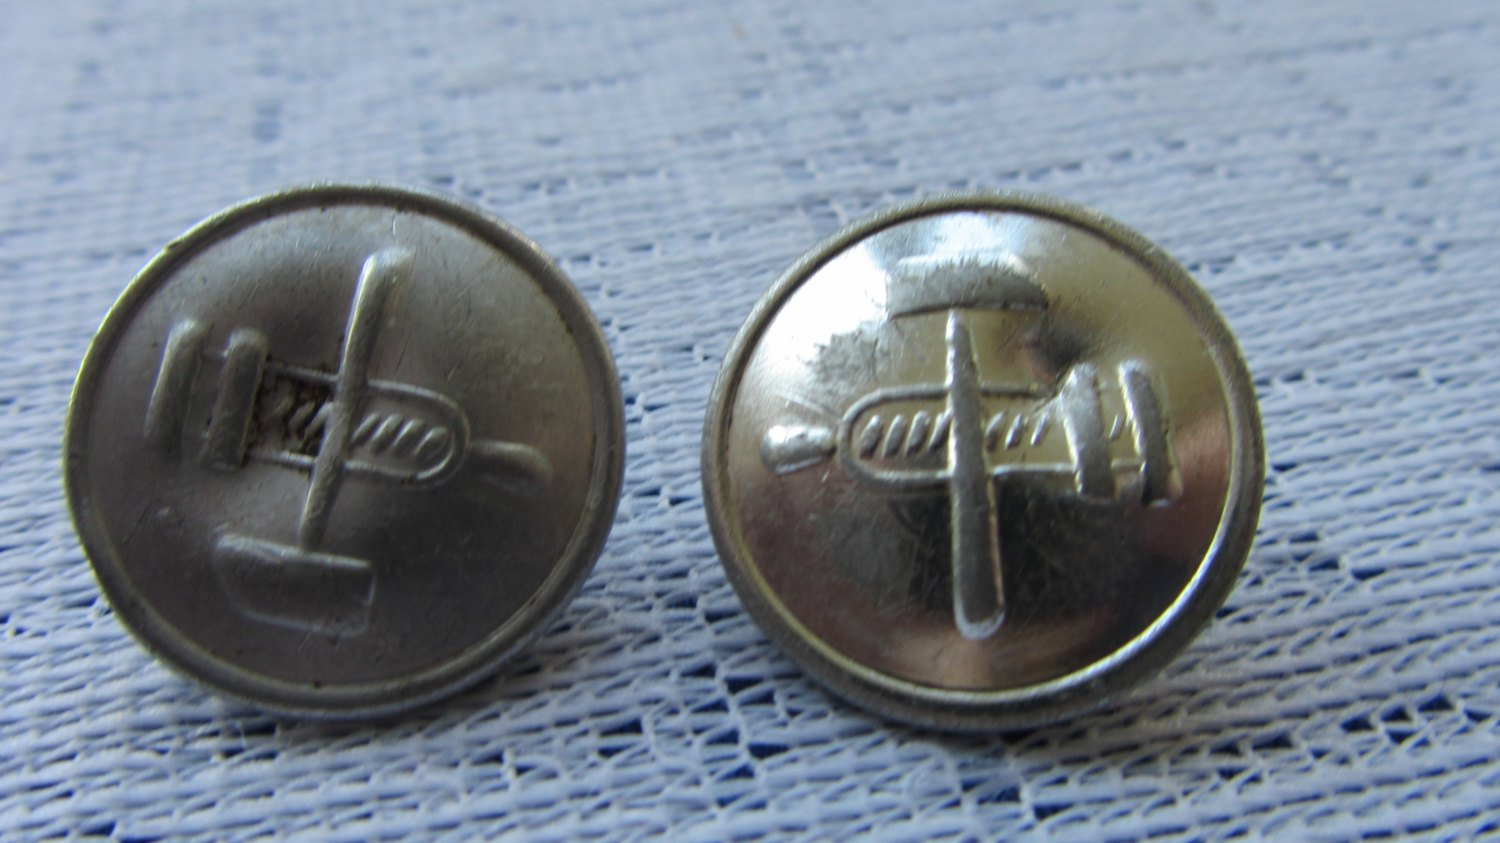 Vintage 6 Buttons White Silver Color Metal Anchor Buttons, Vintage Anchor Button Set, Metal 6 railro